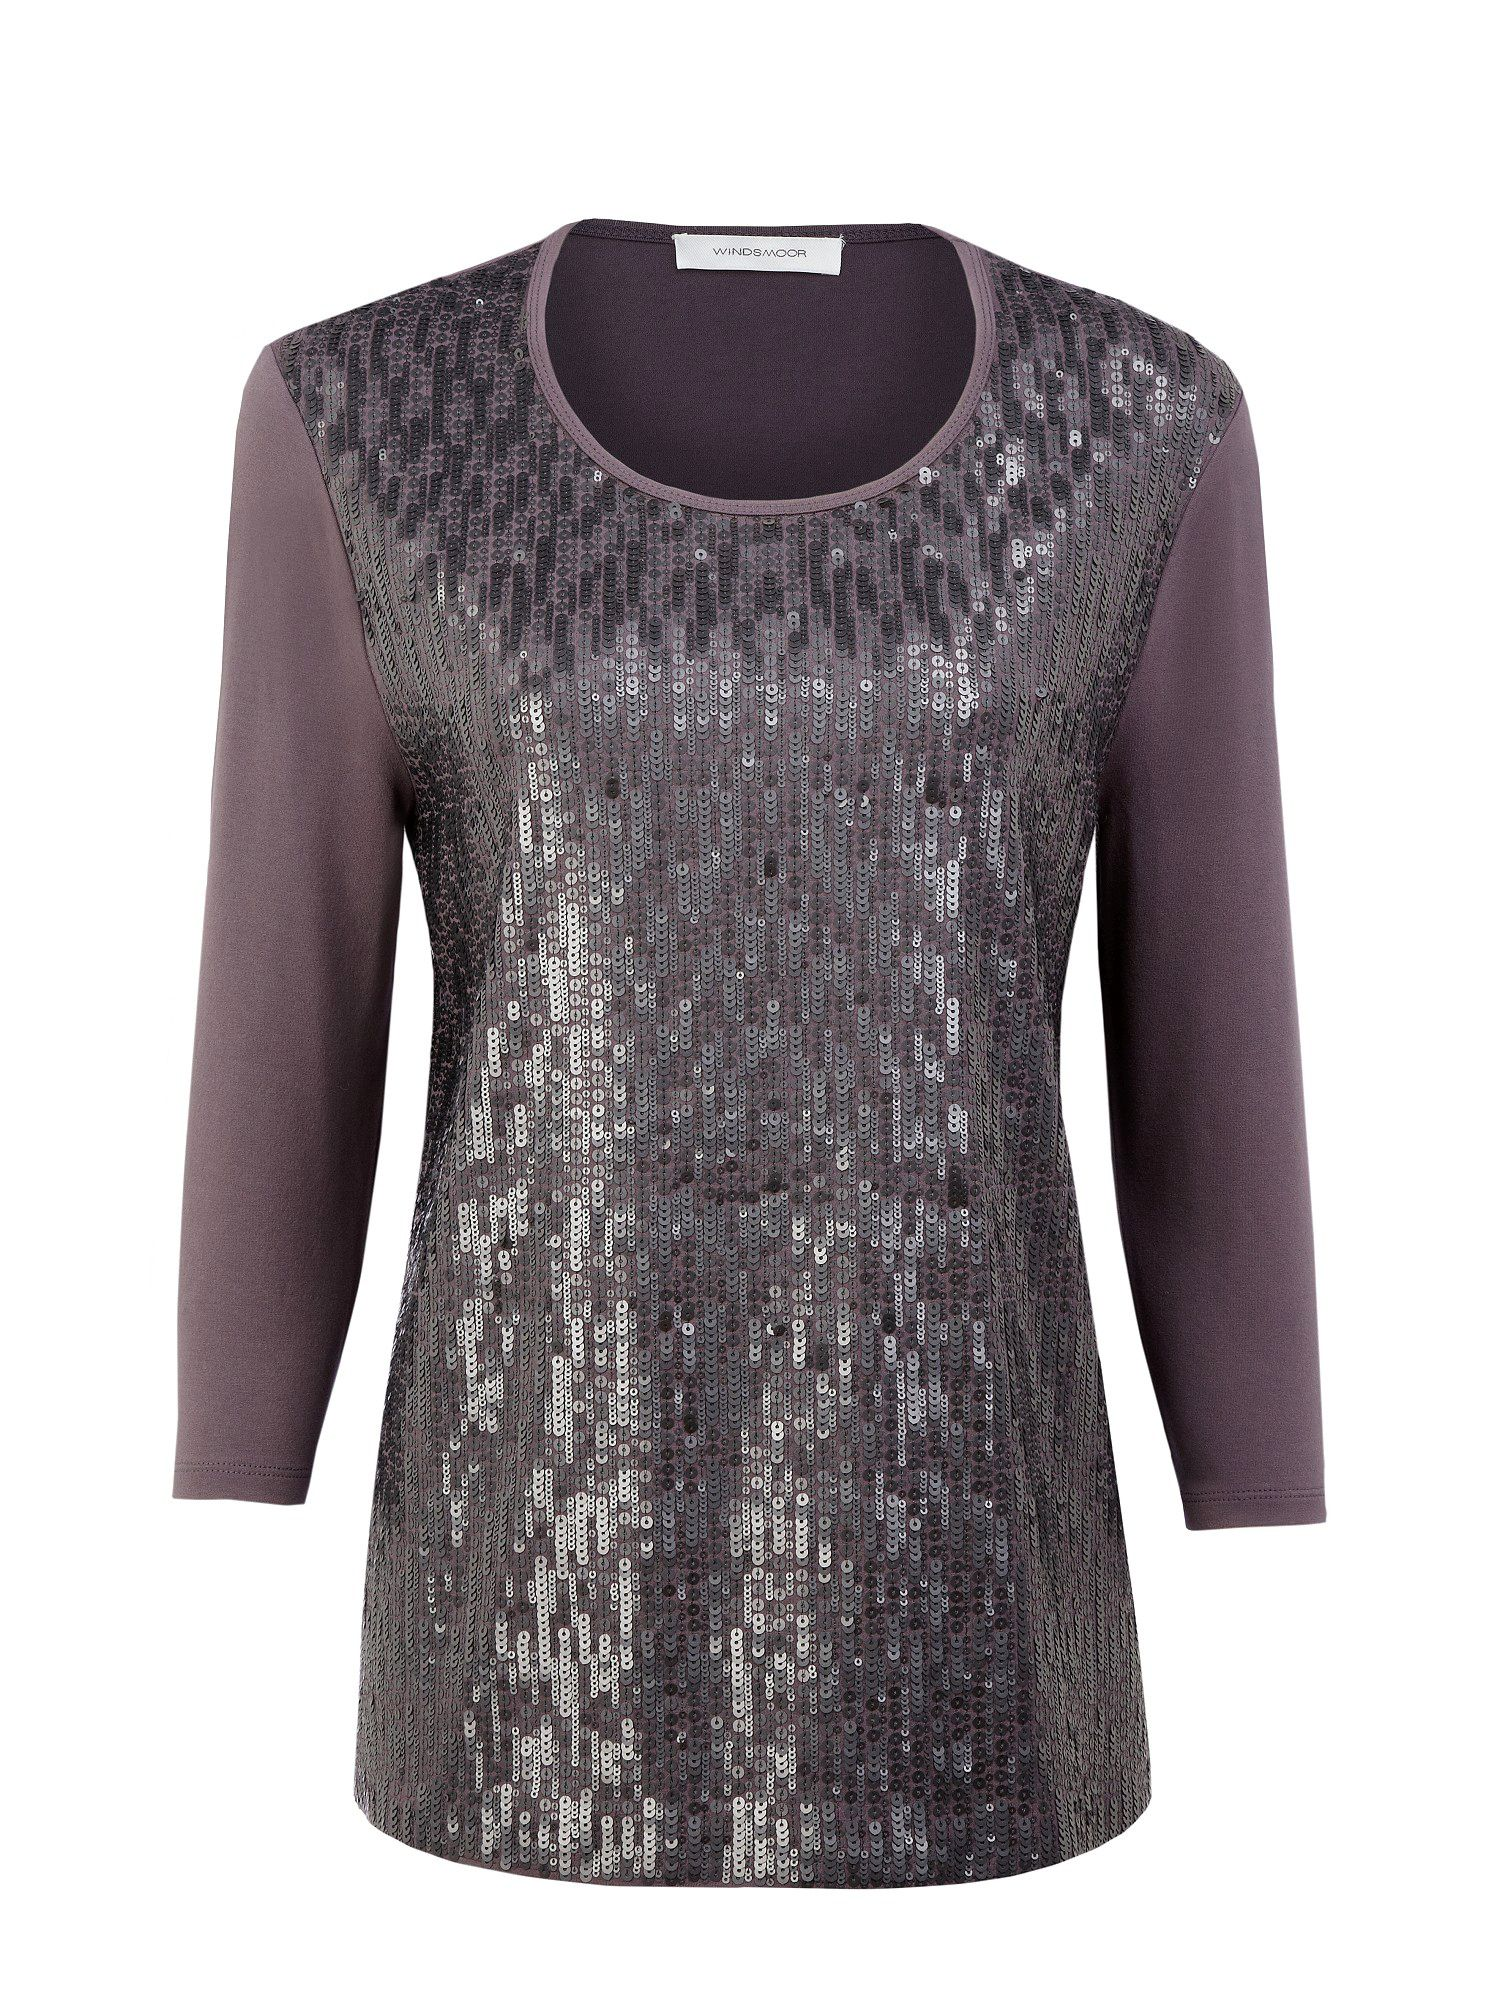 Dove grey sequin top